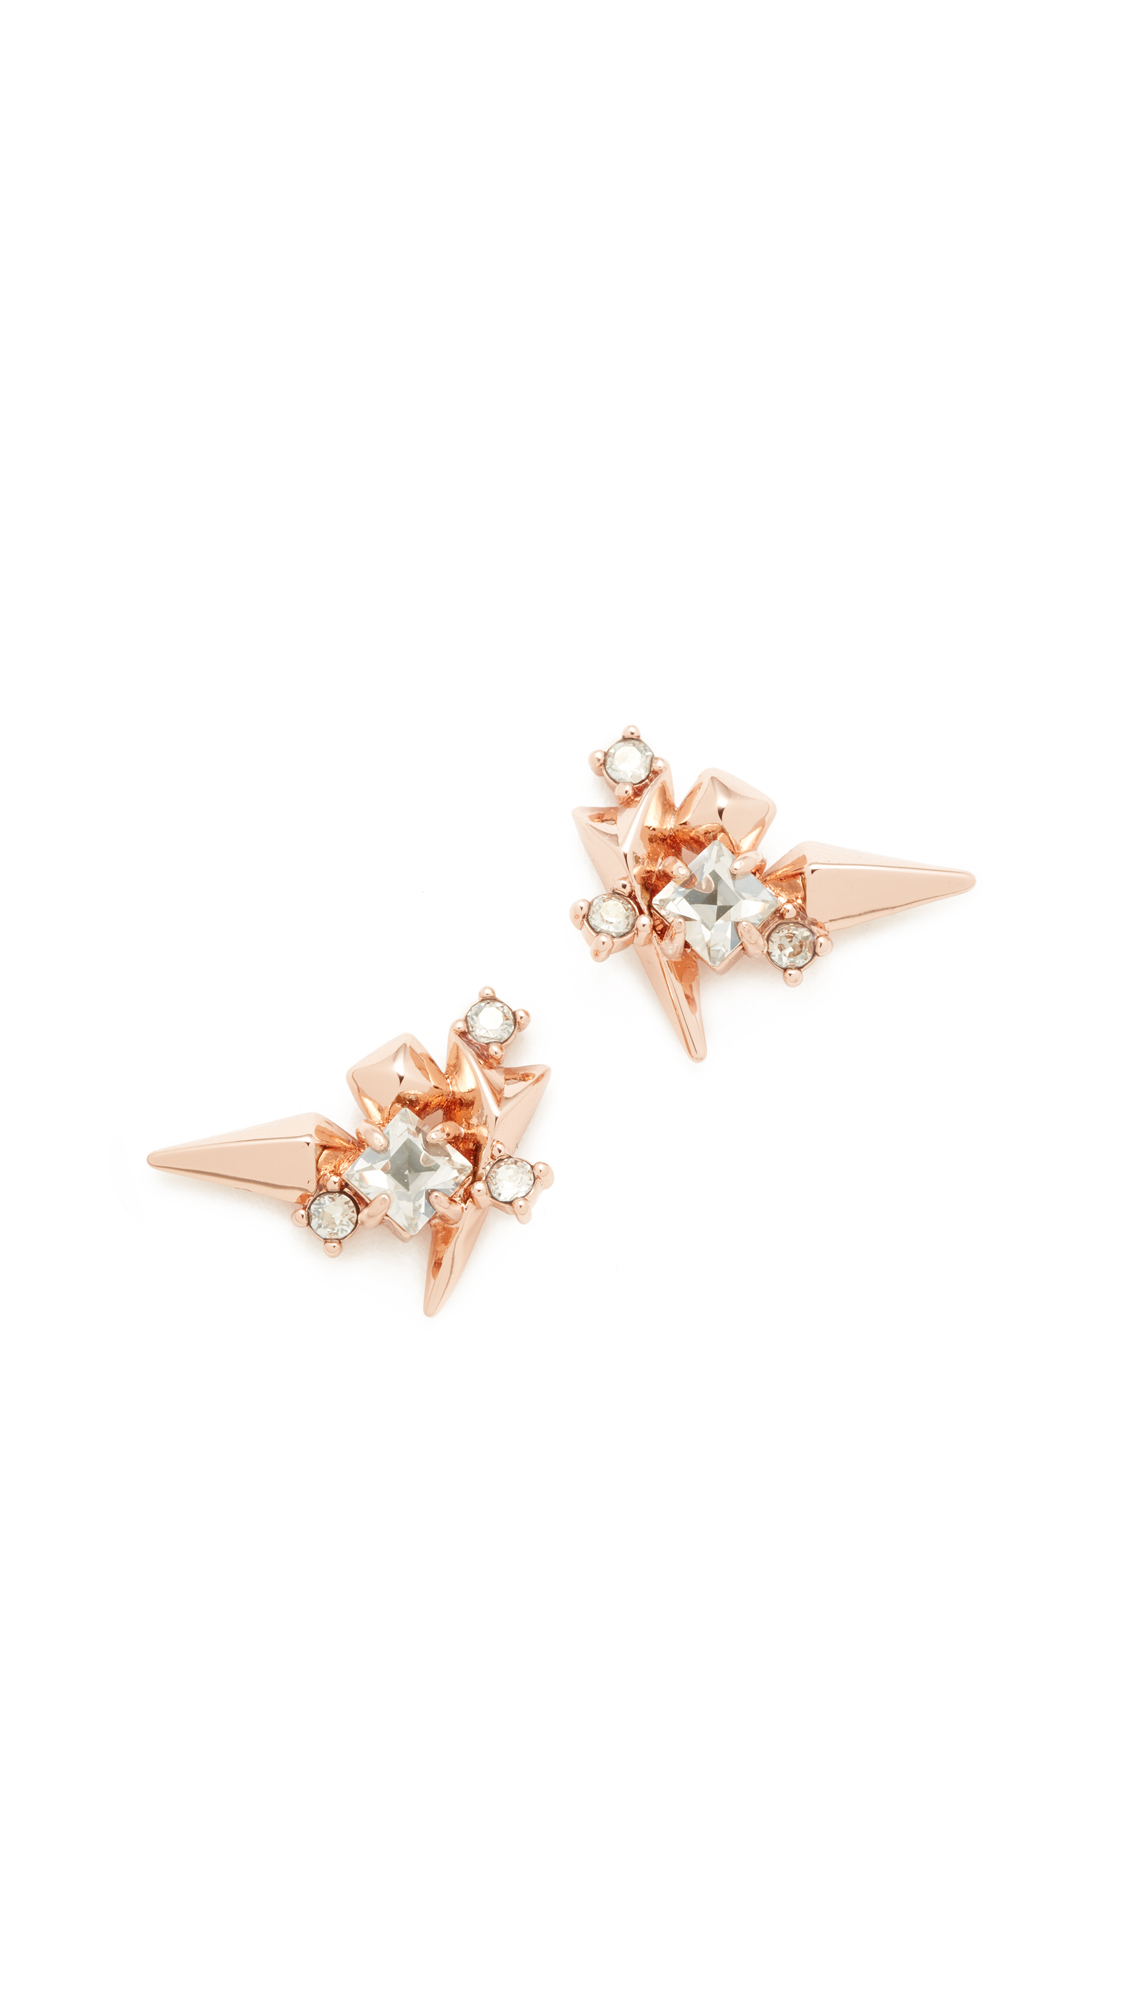 Alexis Bittar Studded Post Earrings - Rose Gold/Clear